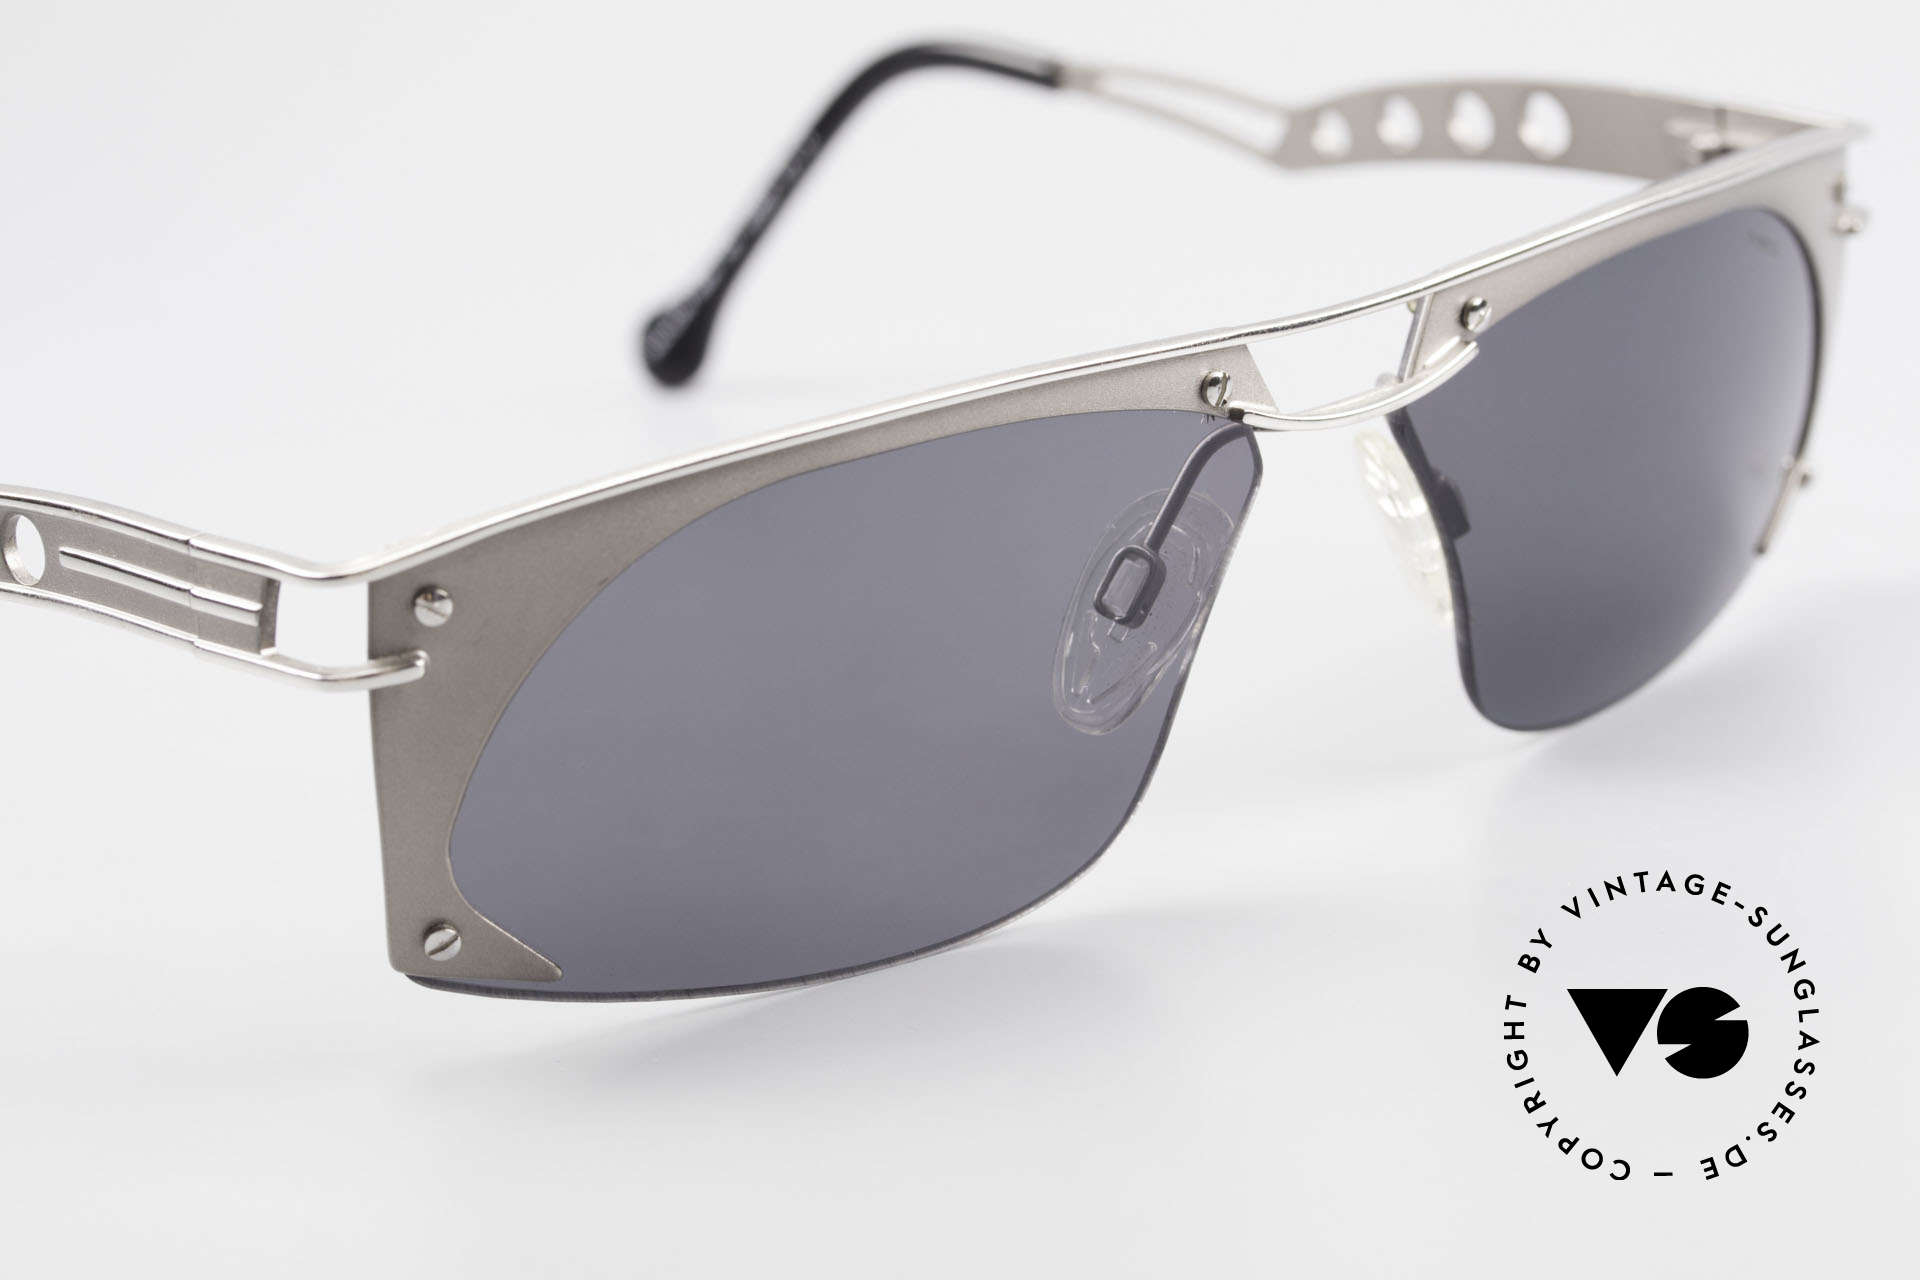 Neostyle Holiday 968 1990's Steampunk Sunglasses, NO RETRO shades, but a rare ORIGINAL with case, Made for Men